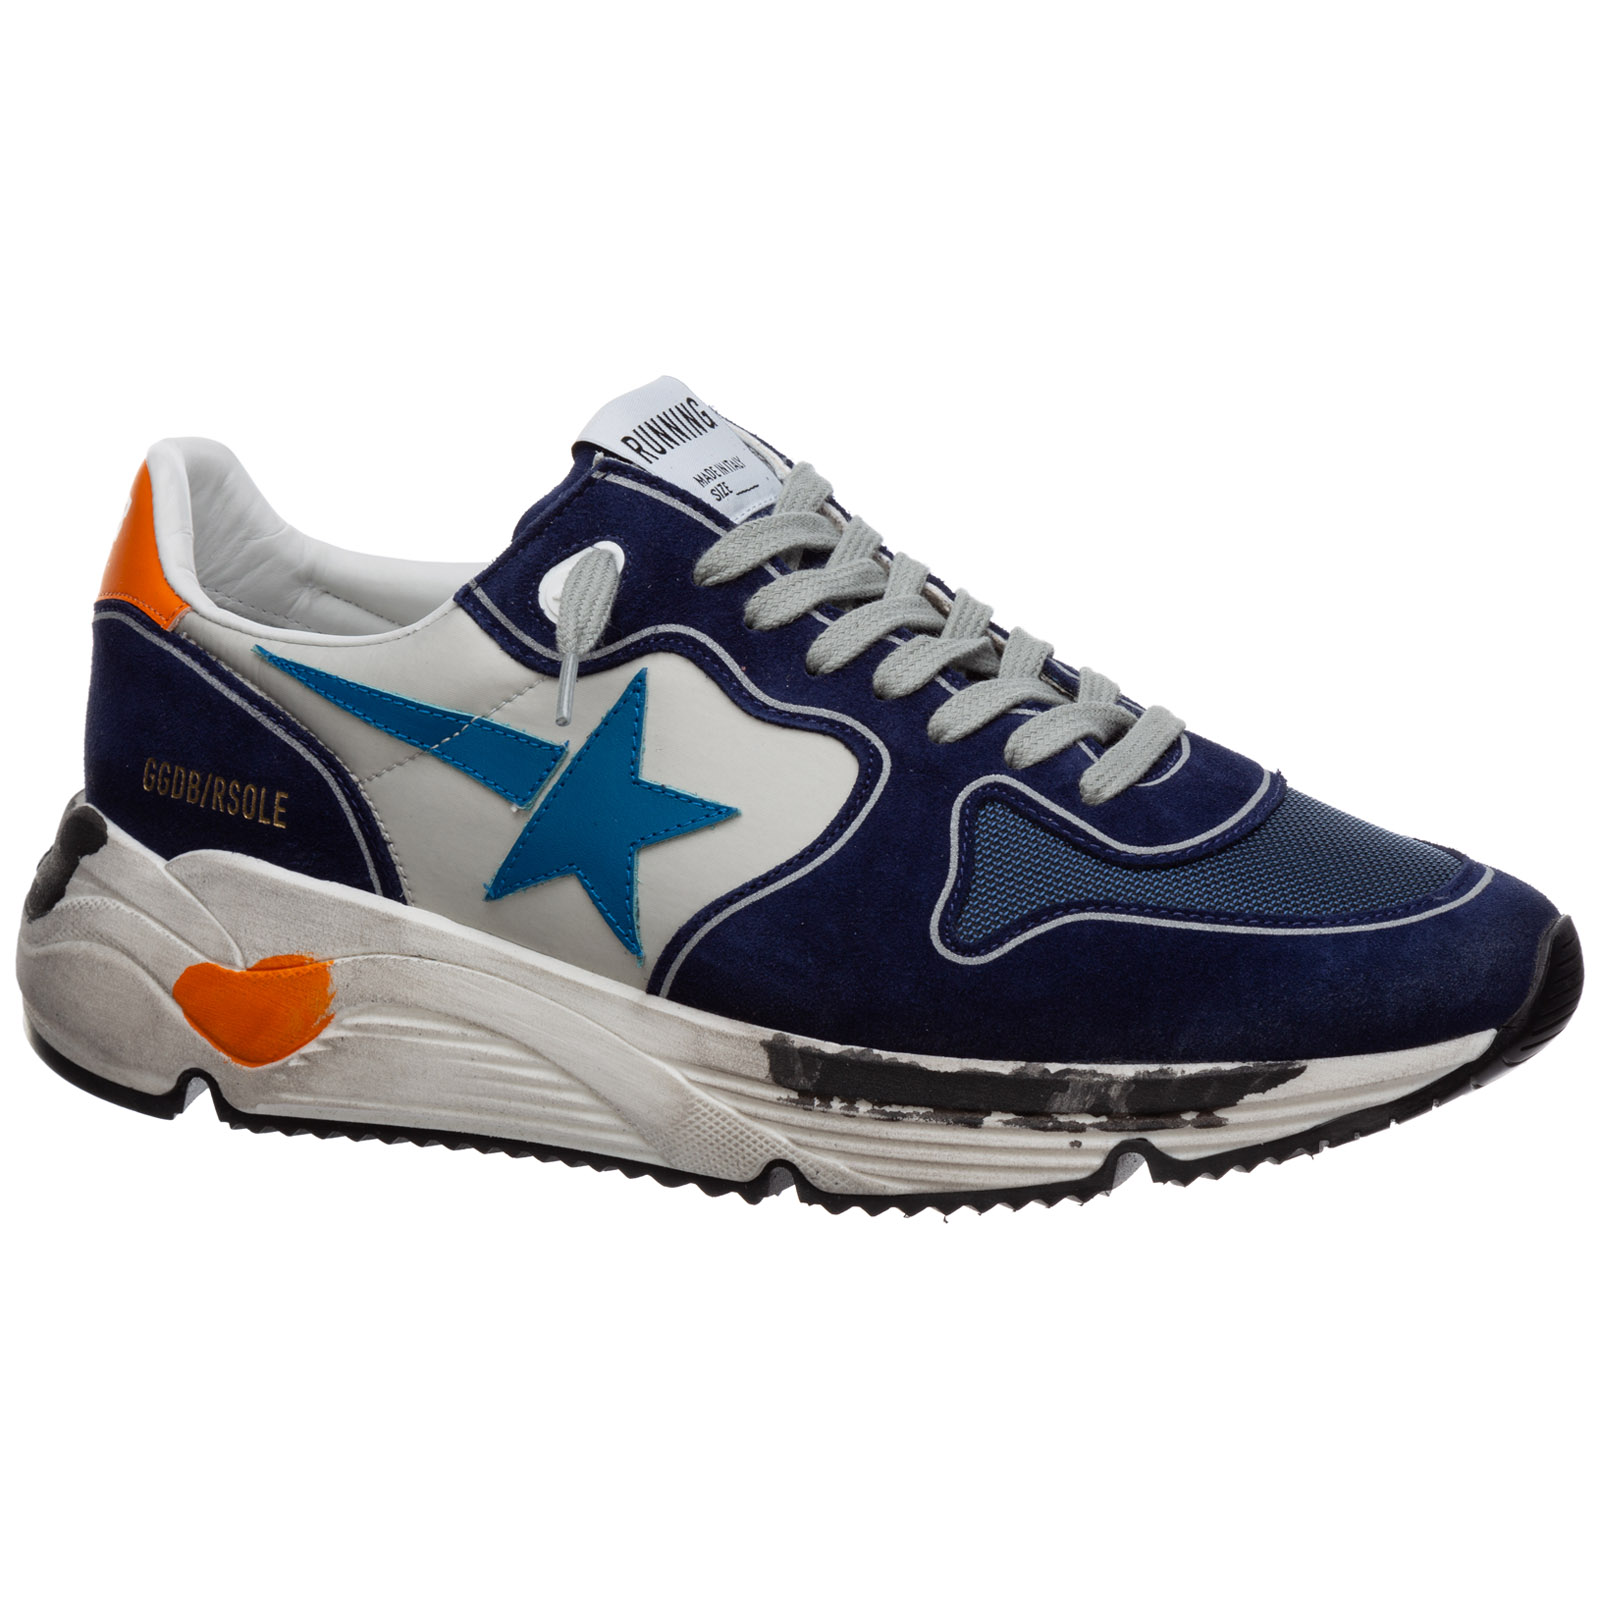 Men's shoes suede trainers sneakers running